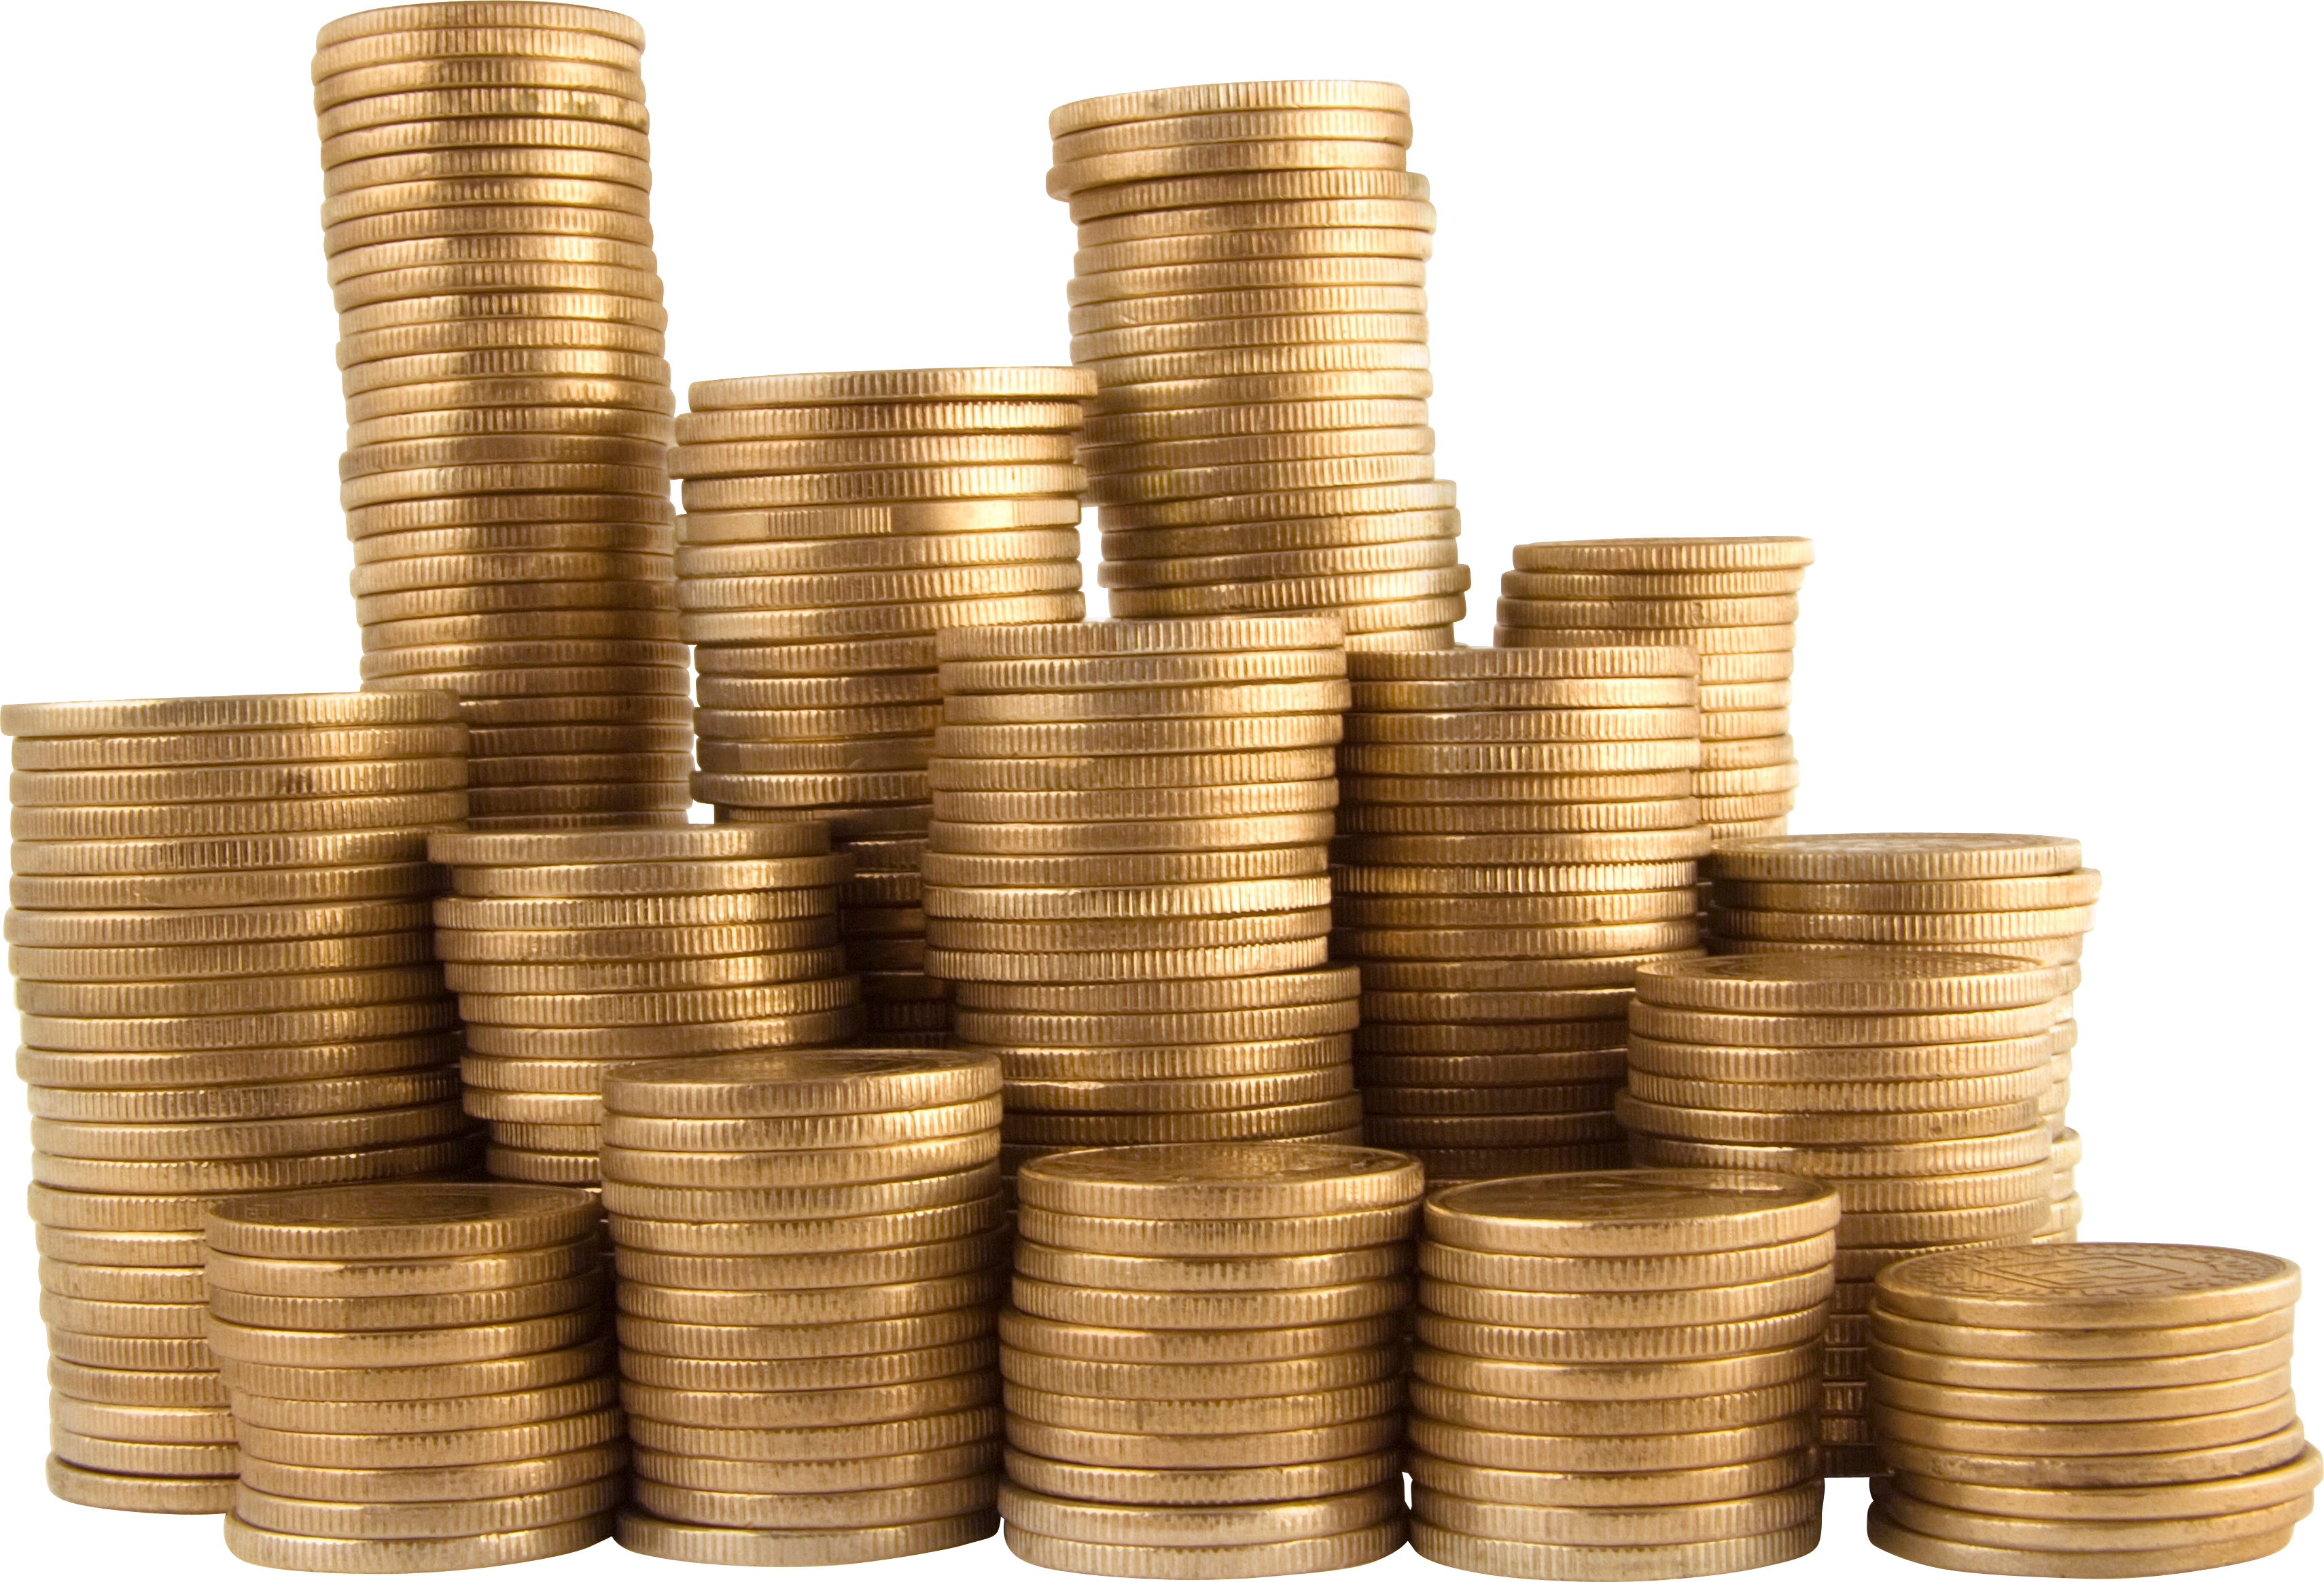 Clipart money stack no background picture black and white library Stack of Money Coins | Isolated Stock Photo by noBACKS.com picture black and white library